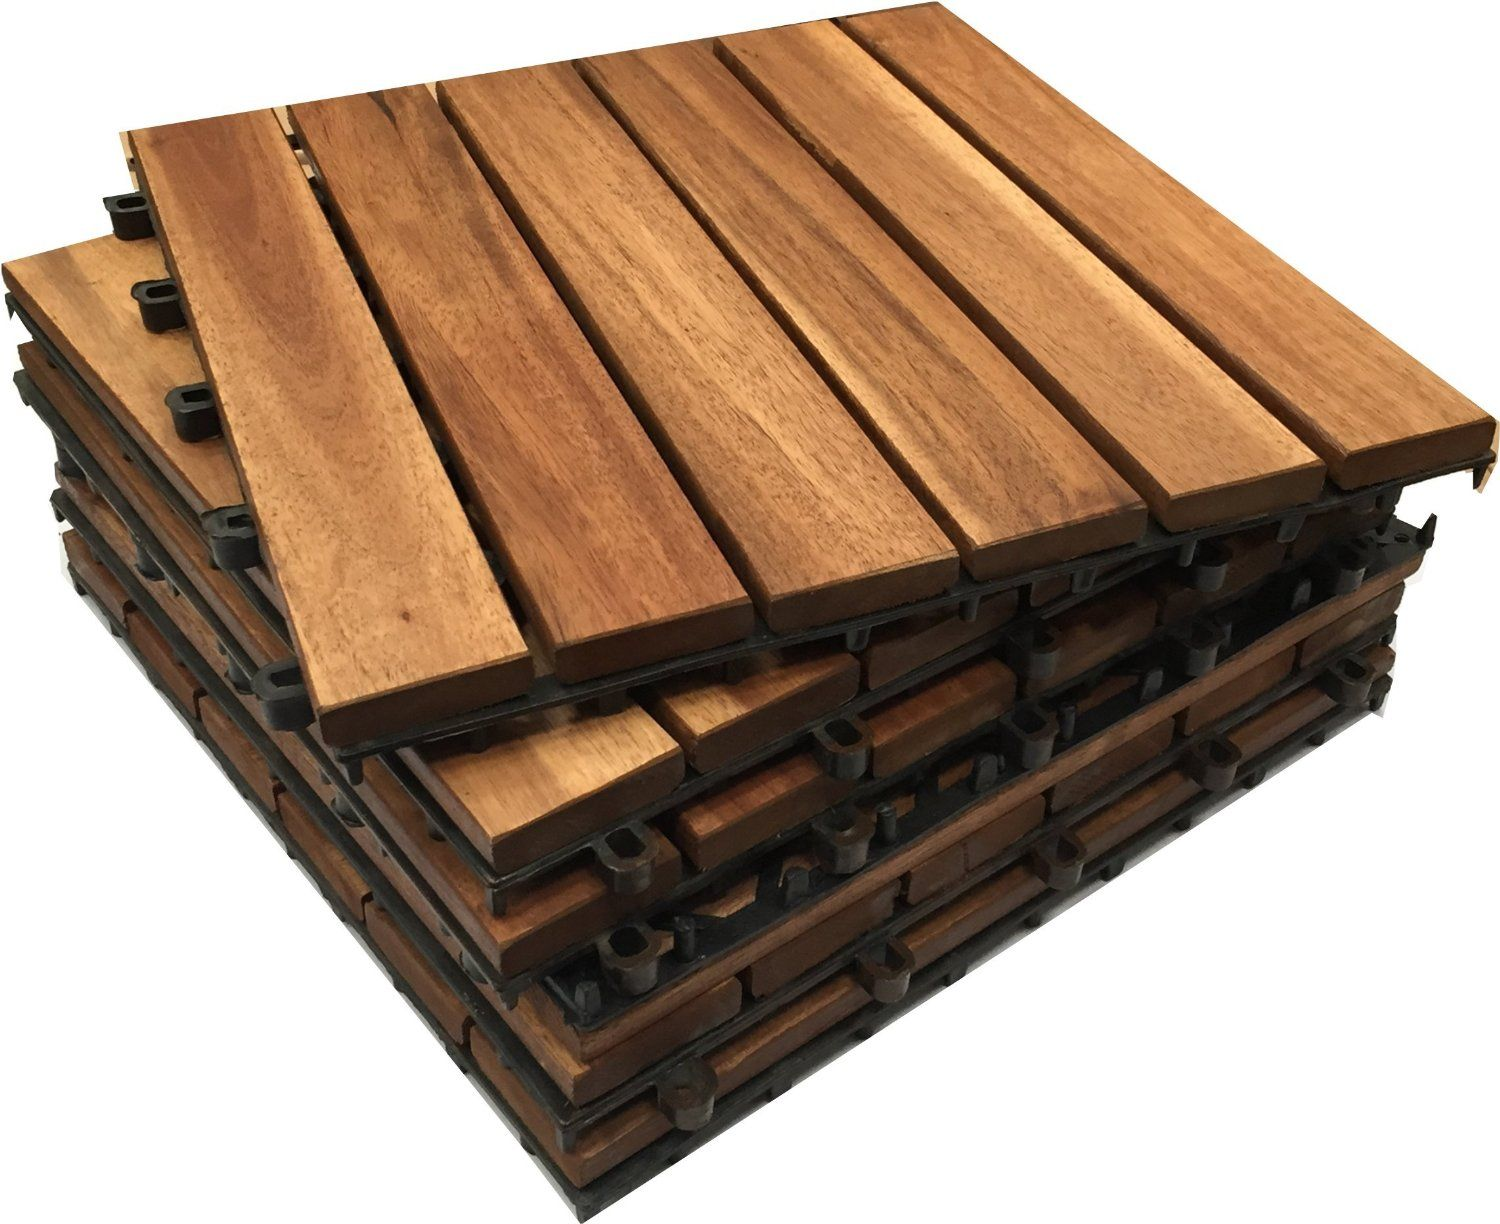 Wood Deck And Patio Interlocking Tiles ~ Wooden interlocking acacia hardwood decking tiles